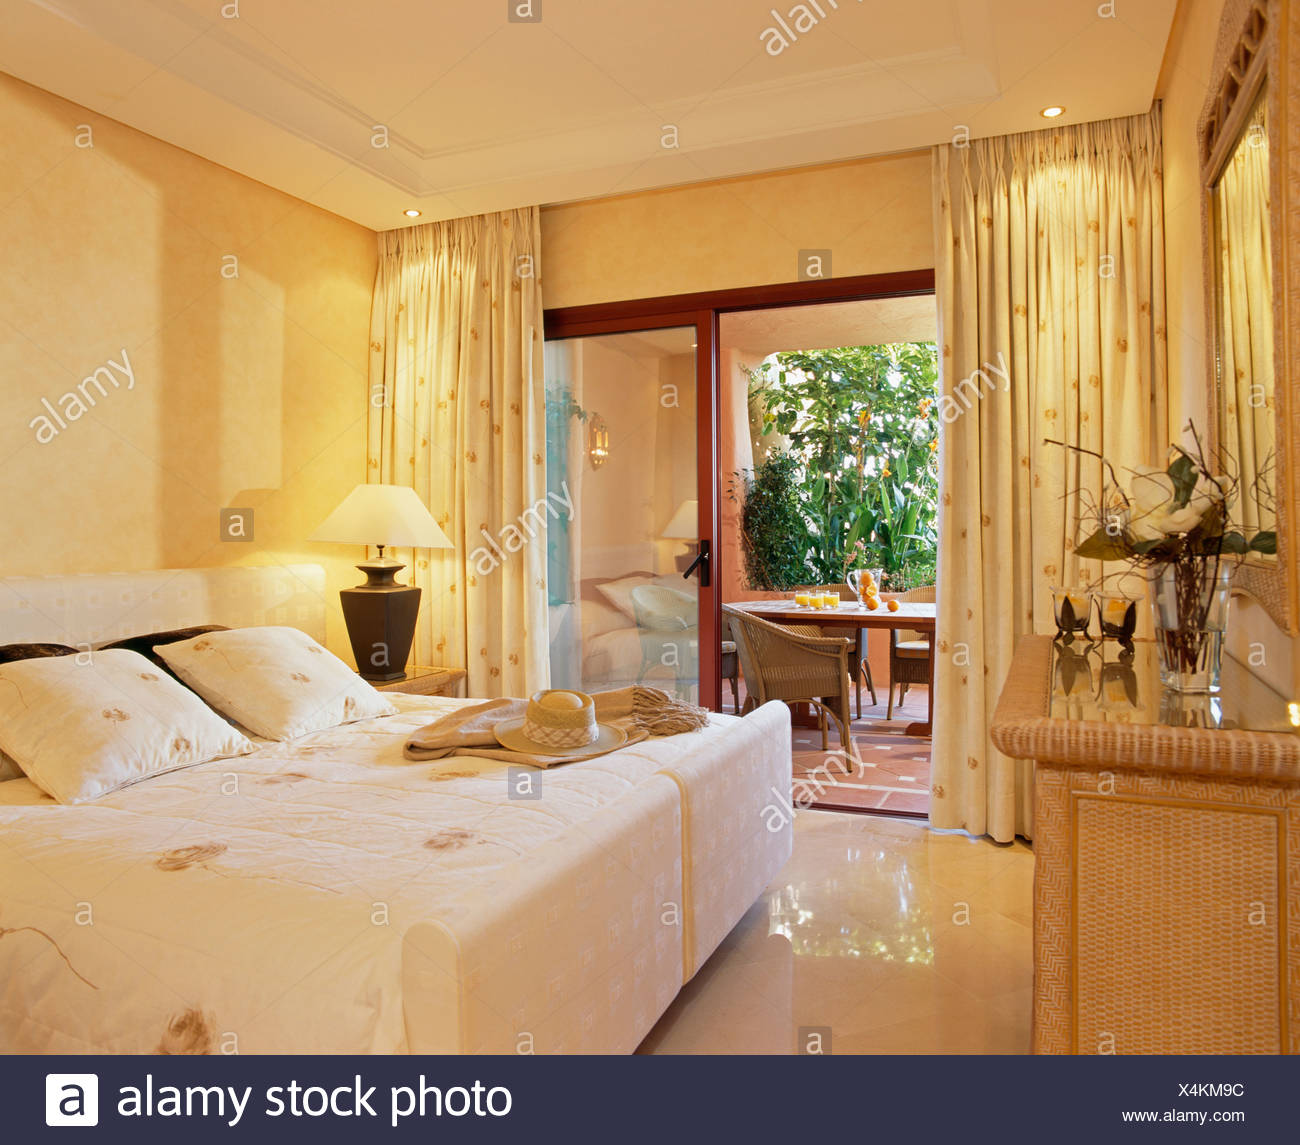 Lighting above cream curtains at open patio doors to balcony ...